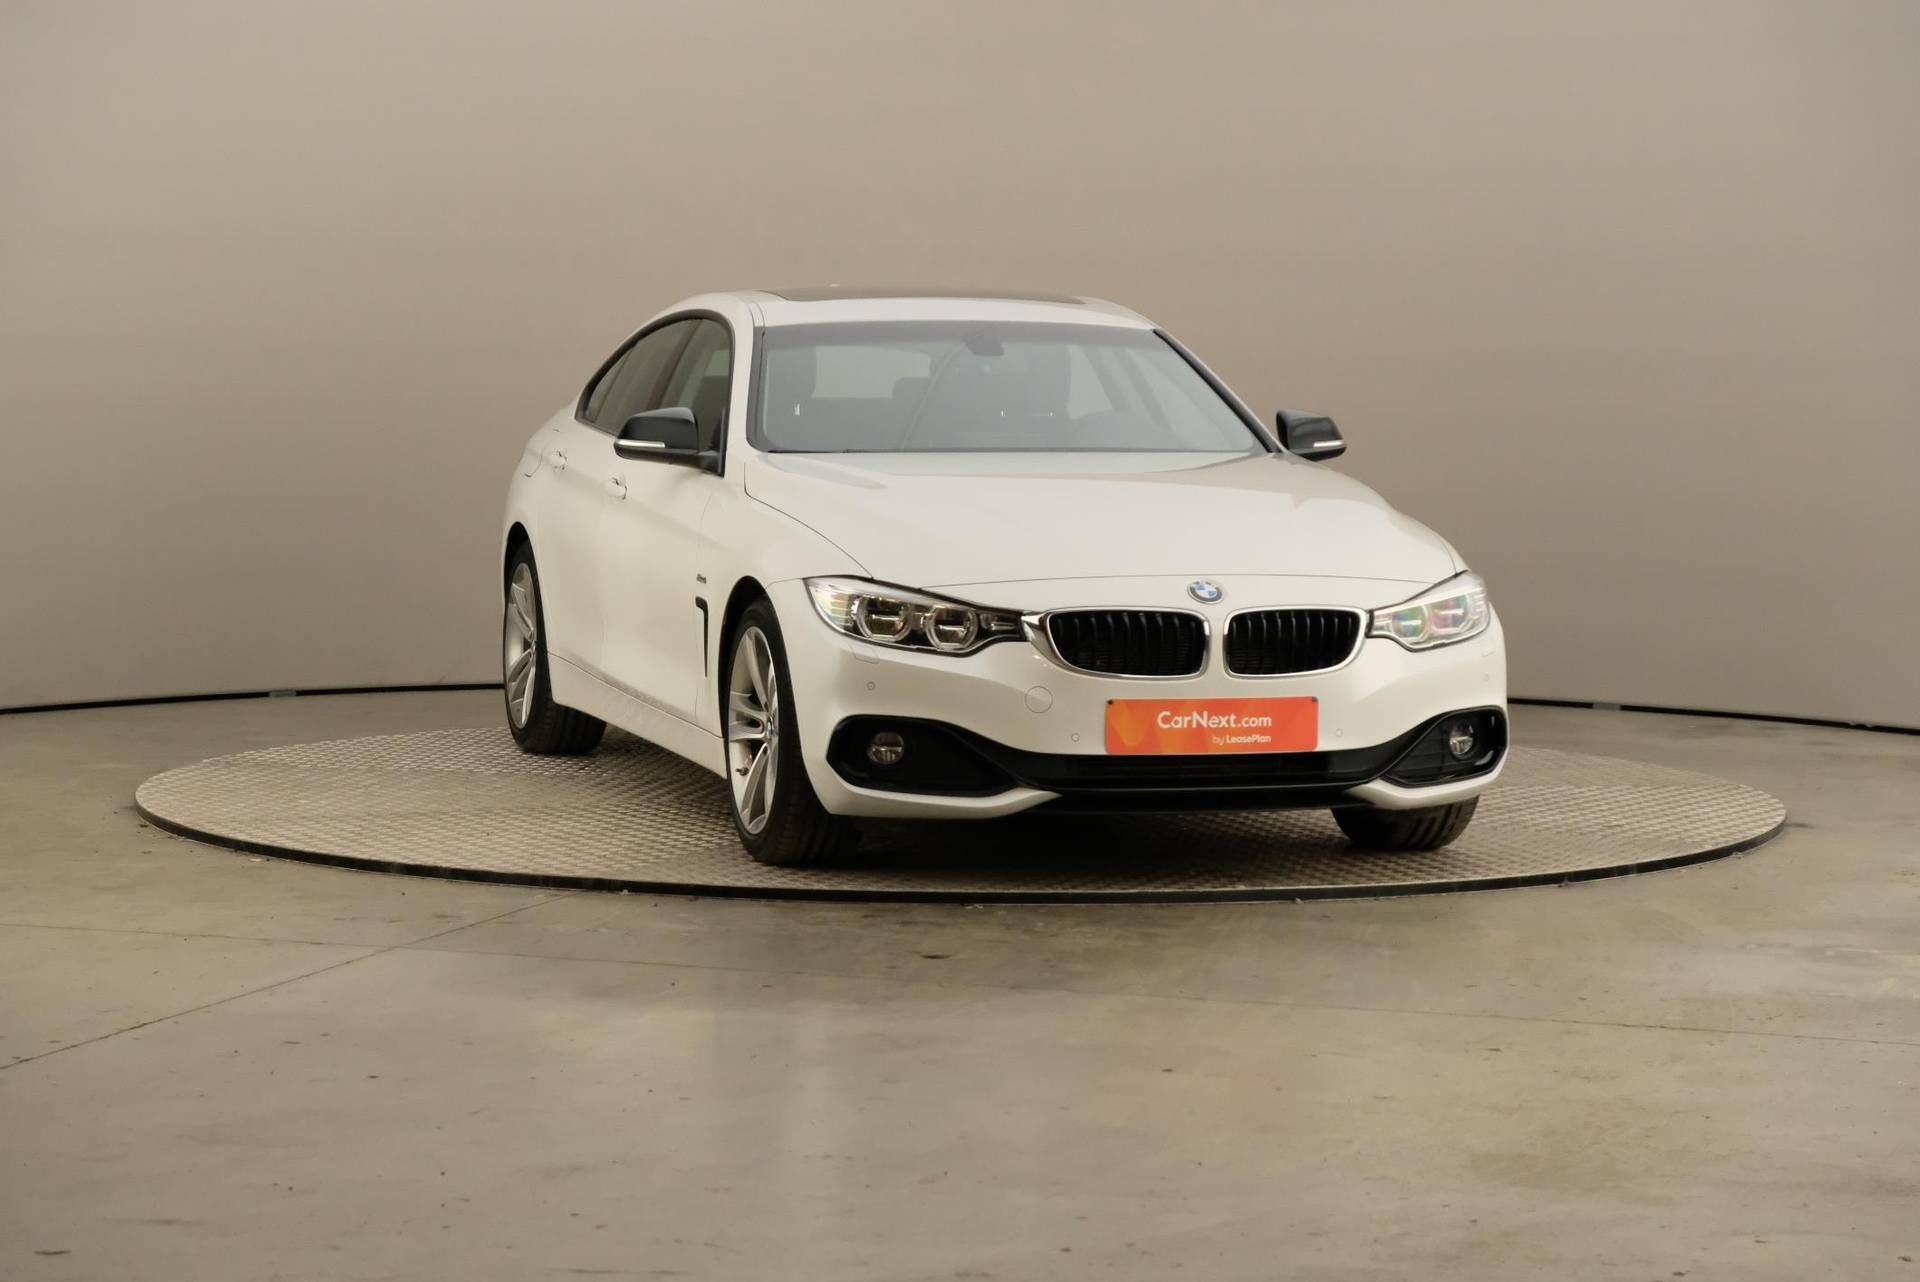 BMW 4 gran coupé 420 dA SPORT LINE LED GPS PROF PDC OPEN DAK/TO HARMAN KARDON, 360-image30